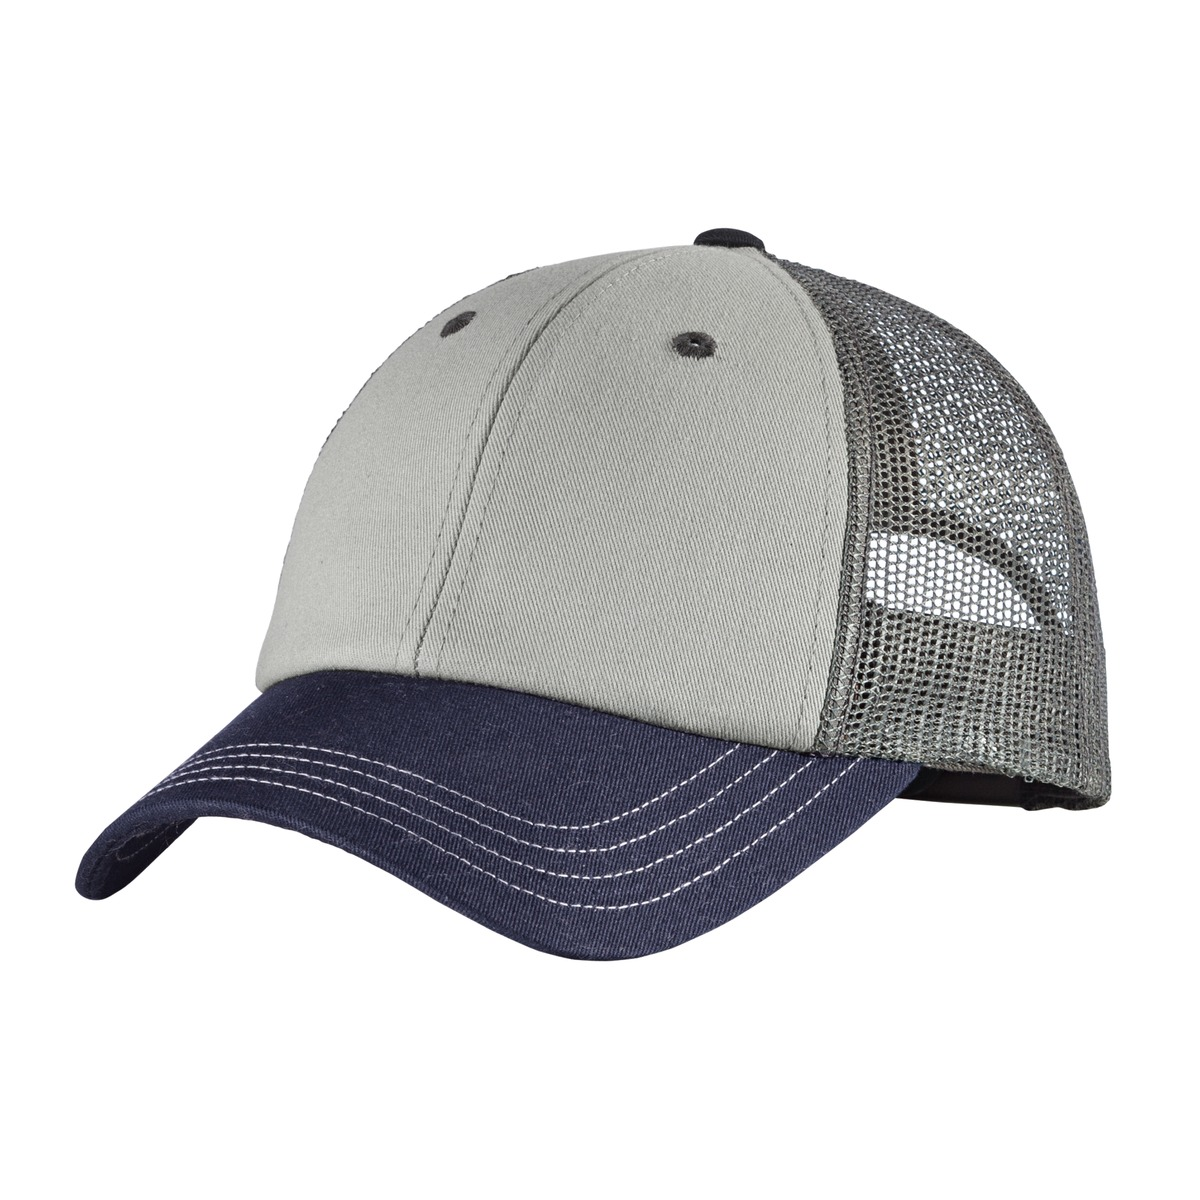 District ®  Tri-Tone Mesh Back Cap DT616 - Chrome/New Navy/Charcoal